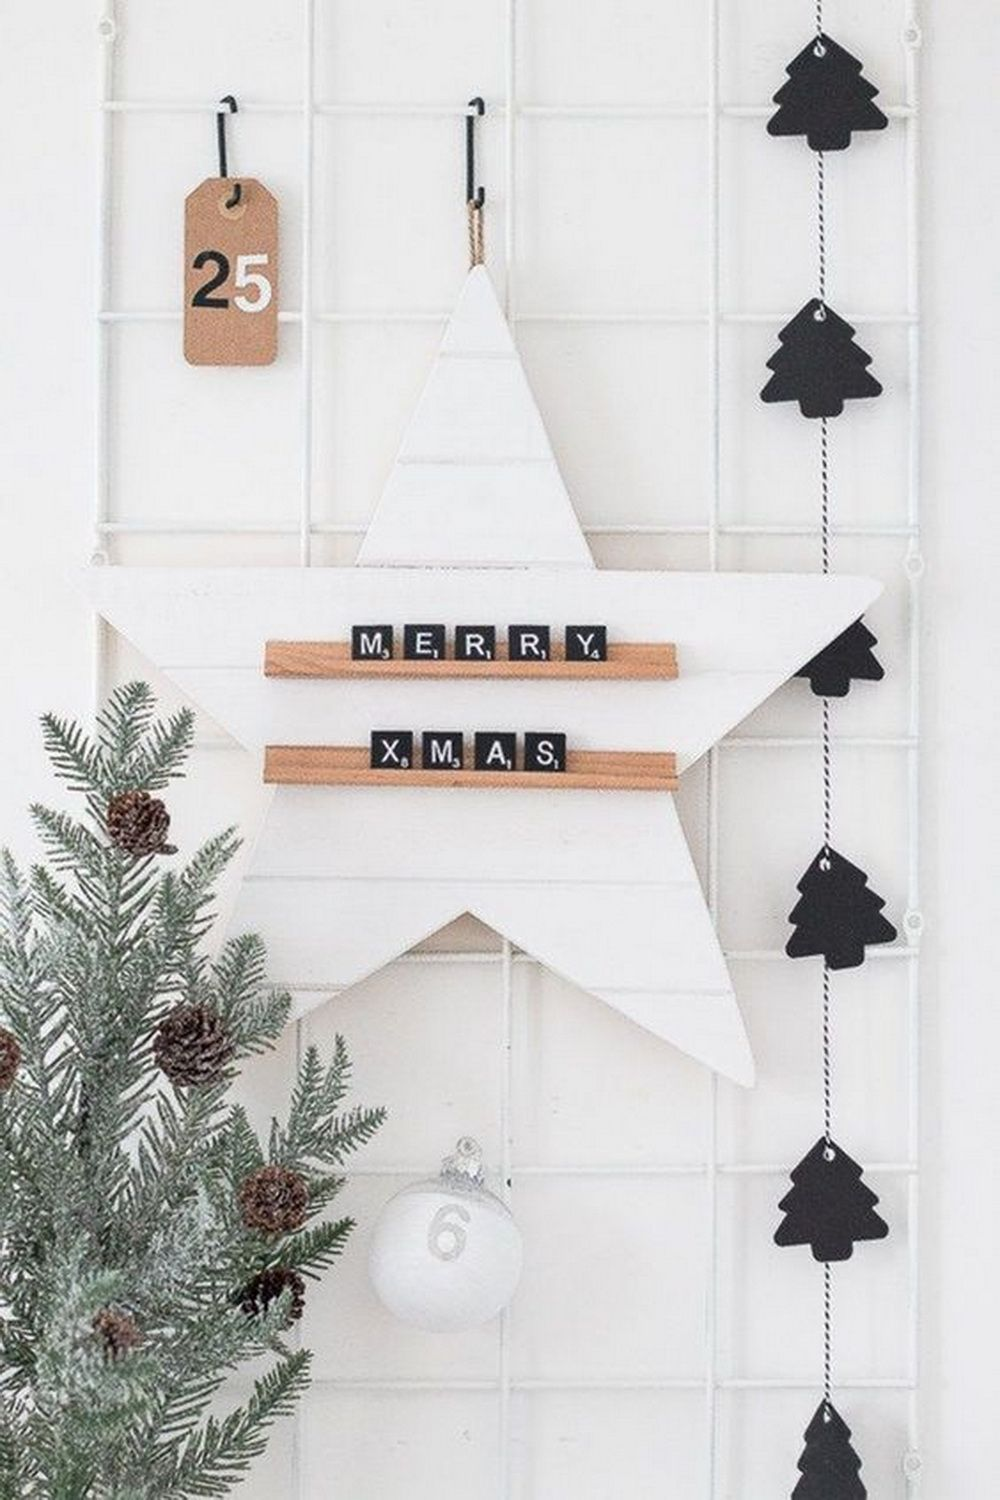 25 Outstanding Scandinavian Holiday Decoration Ideas That Will Inspire You Scandinavian Christmas Decorations Holiday Decor Scandinavian Christmas